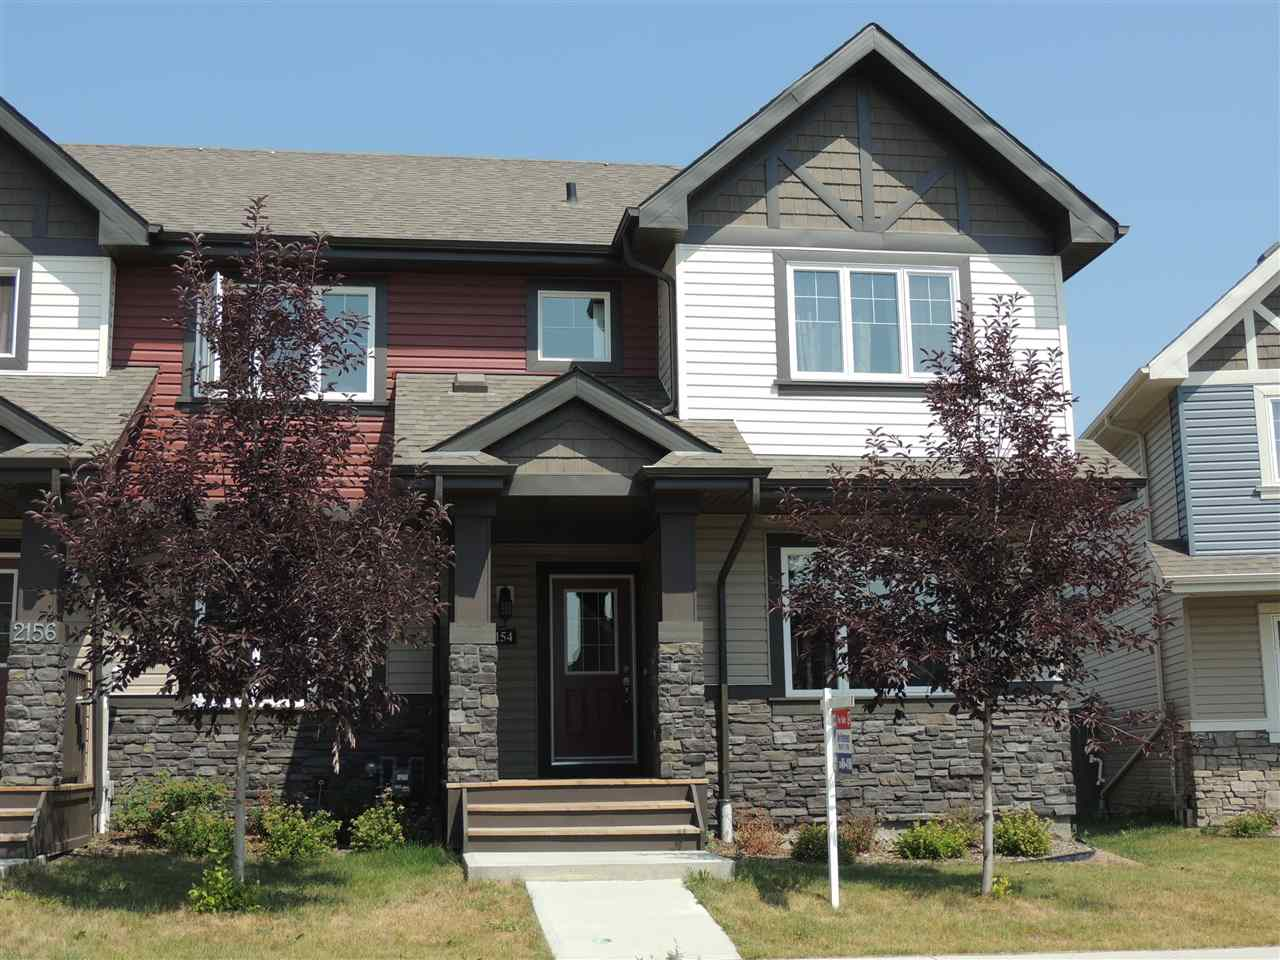 Main Photo: 2154 TRUMPETER Way in Edmonton: Zone 59 Attached Home for sale : MLS® # E4073314